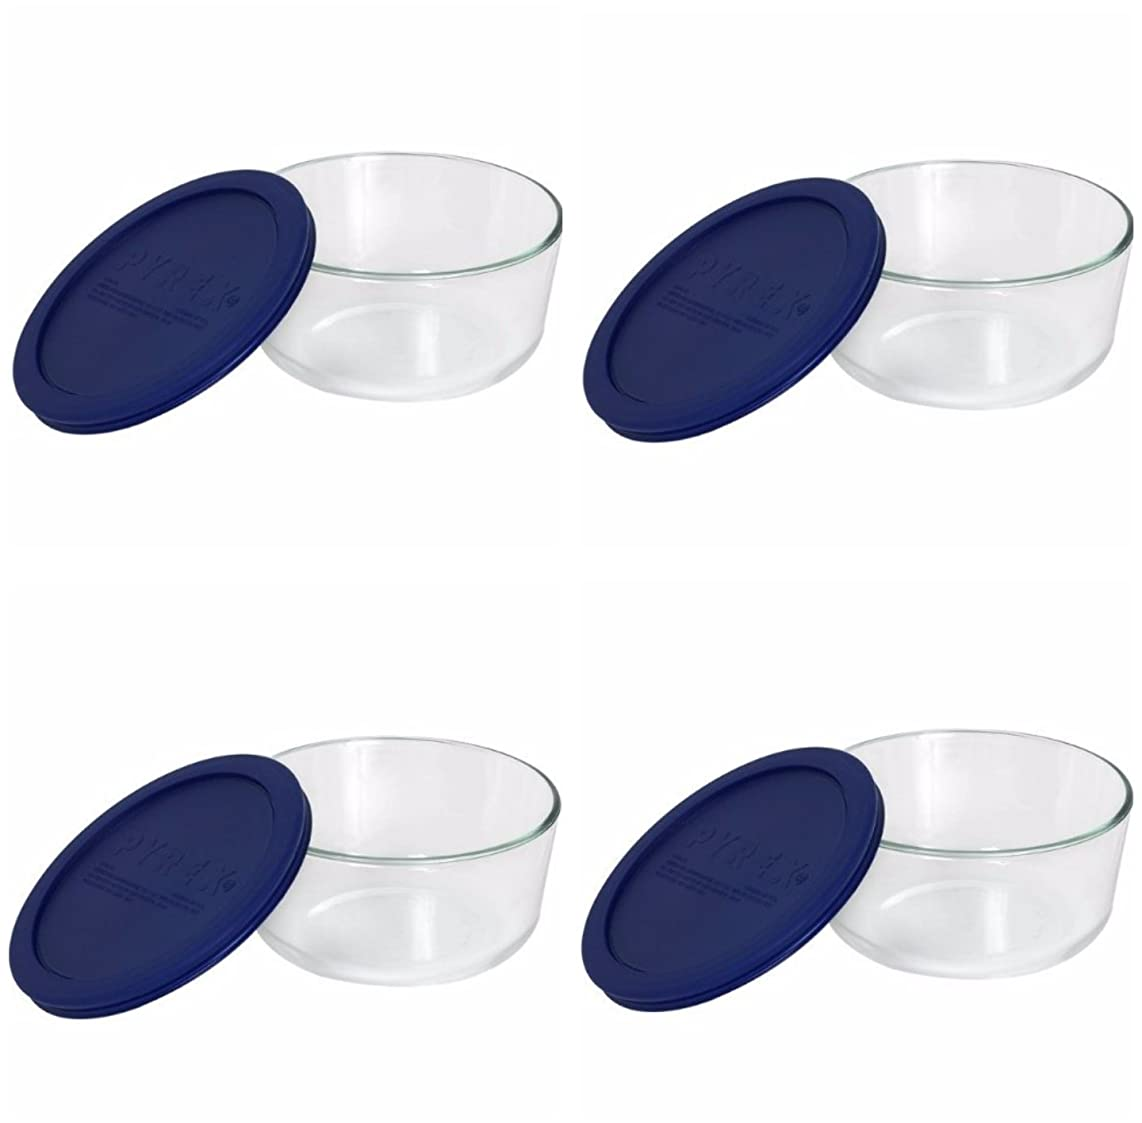 Pyrex Storage 4-Cup Round Dish with Dark Blue Plastic Cover, Clear (Case of 4 Containers) qu754977929761